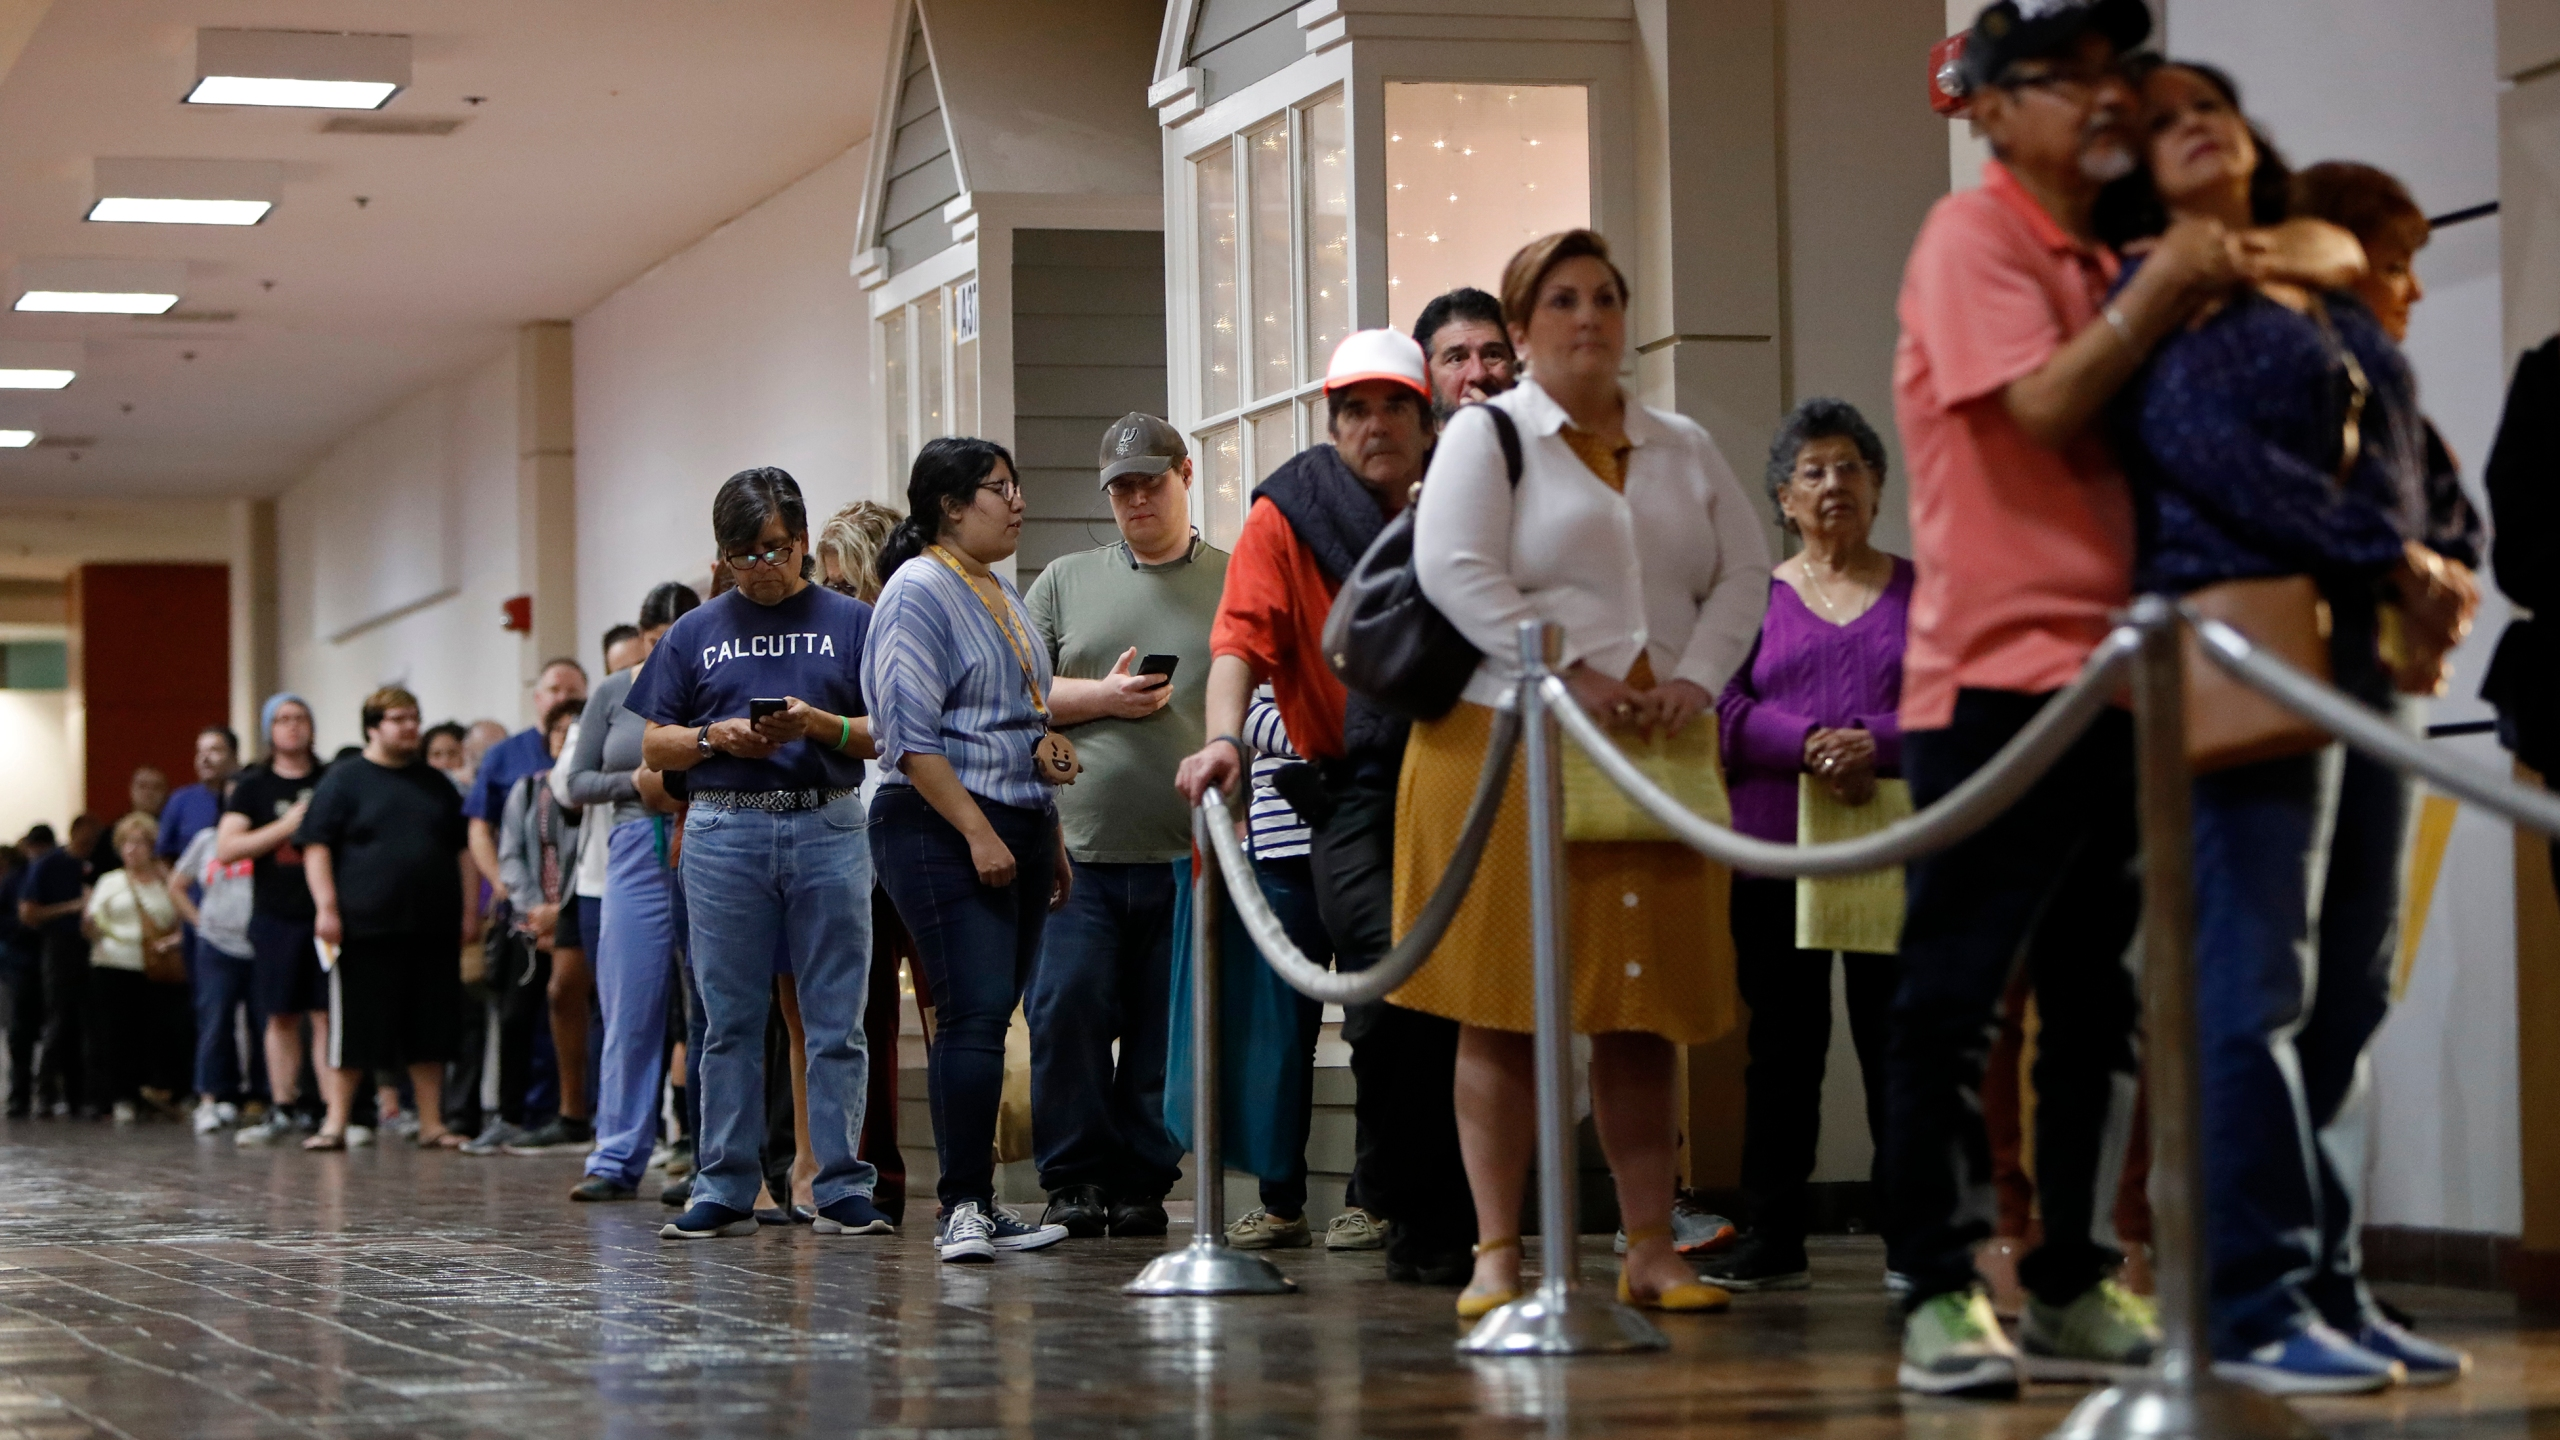 Voters wait in line to cast their ballots in San Antonio, Texas, on March 3, 2020. (Credit: Edward A. Ornelas / Getty Images)